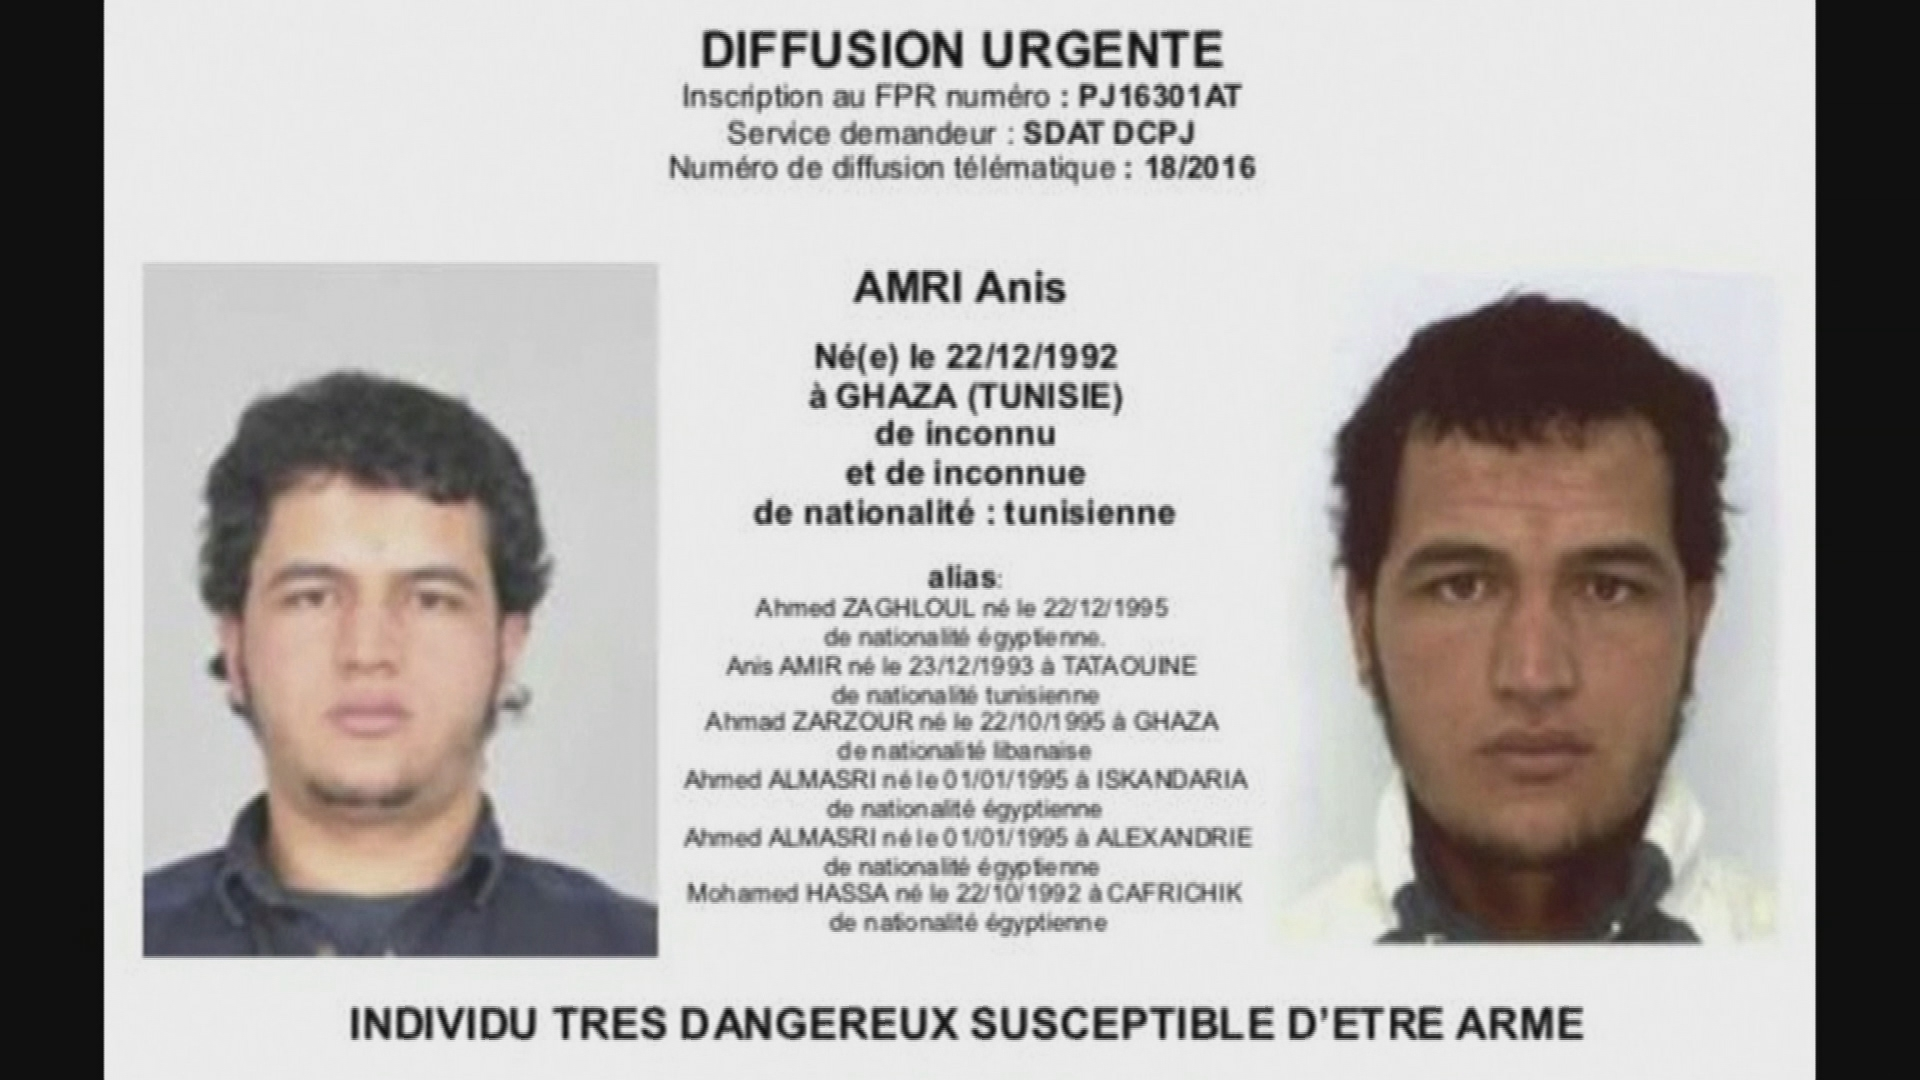 Police warrant for Anis Amri